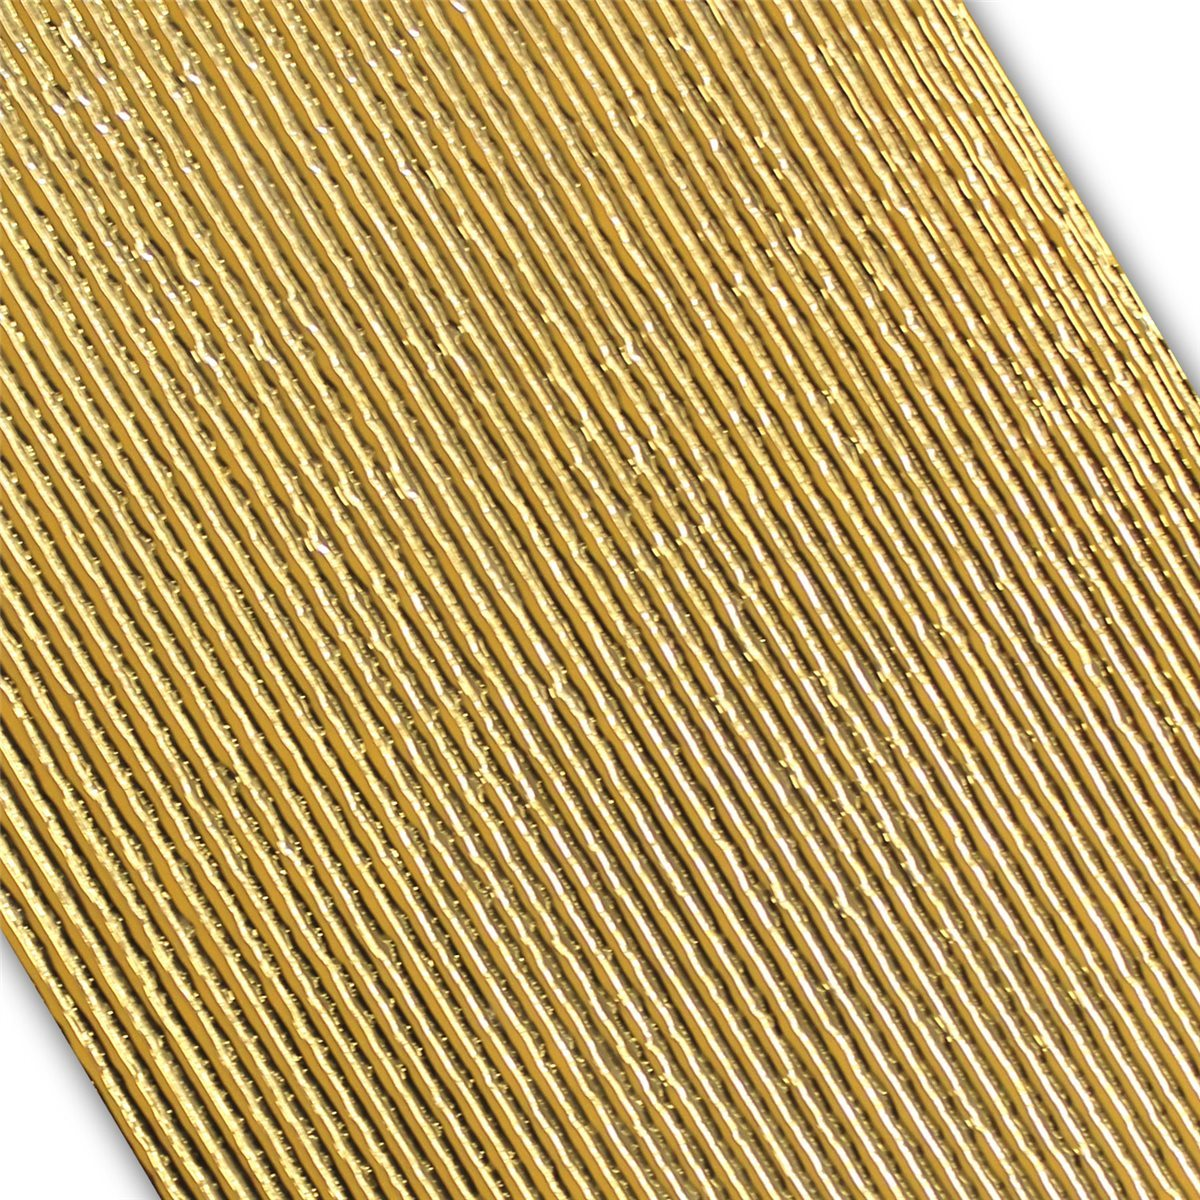 Wall Decor Tiles Gold Ribbed 30x60cm | www.mosafil.co.uk